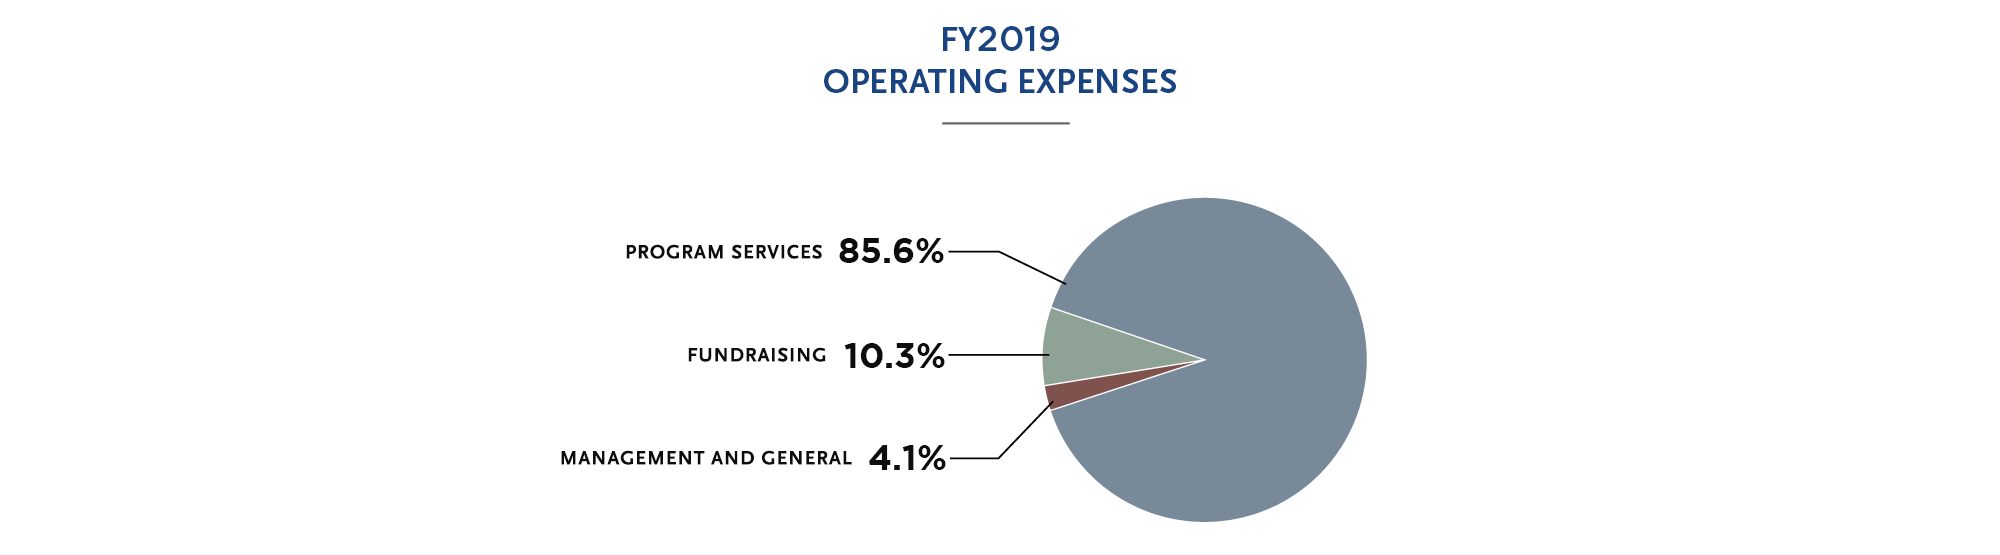 FY19 Operating Expenses